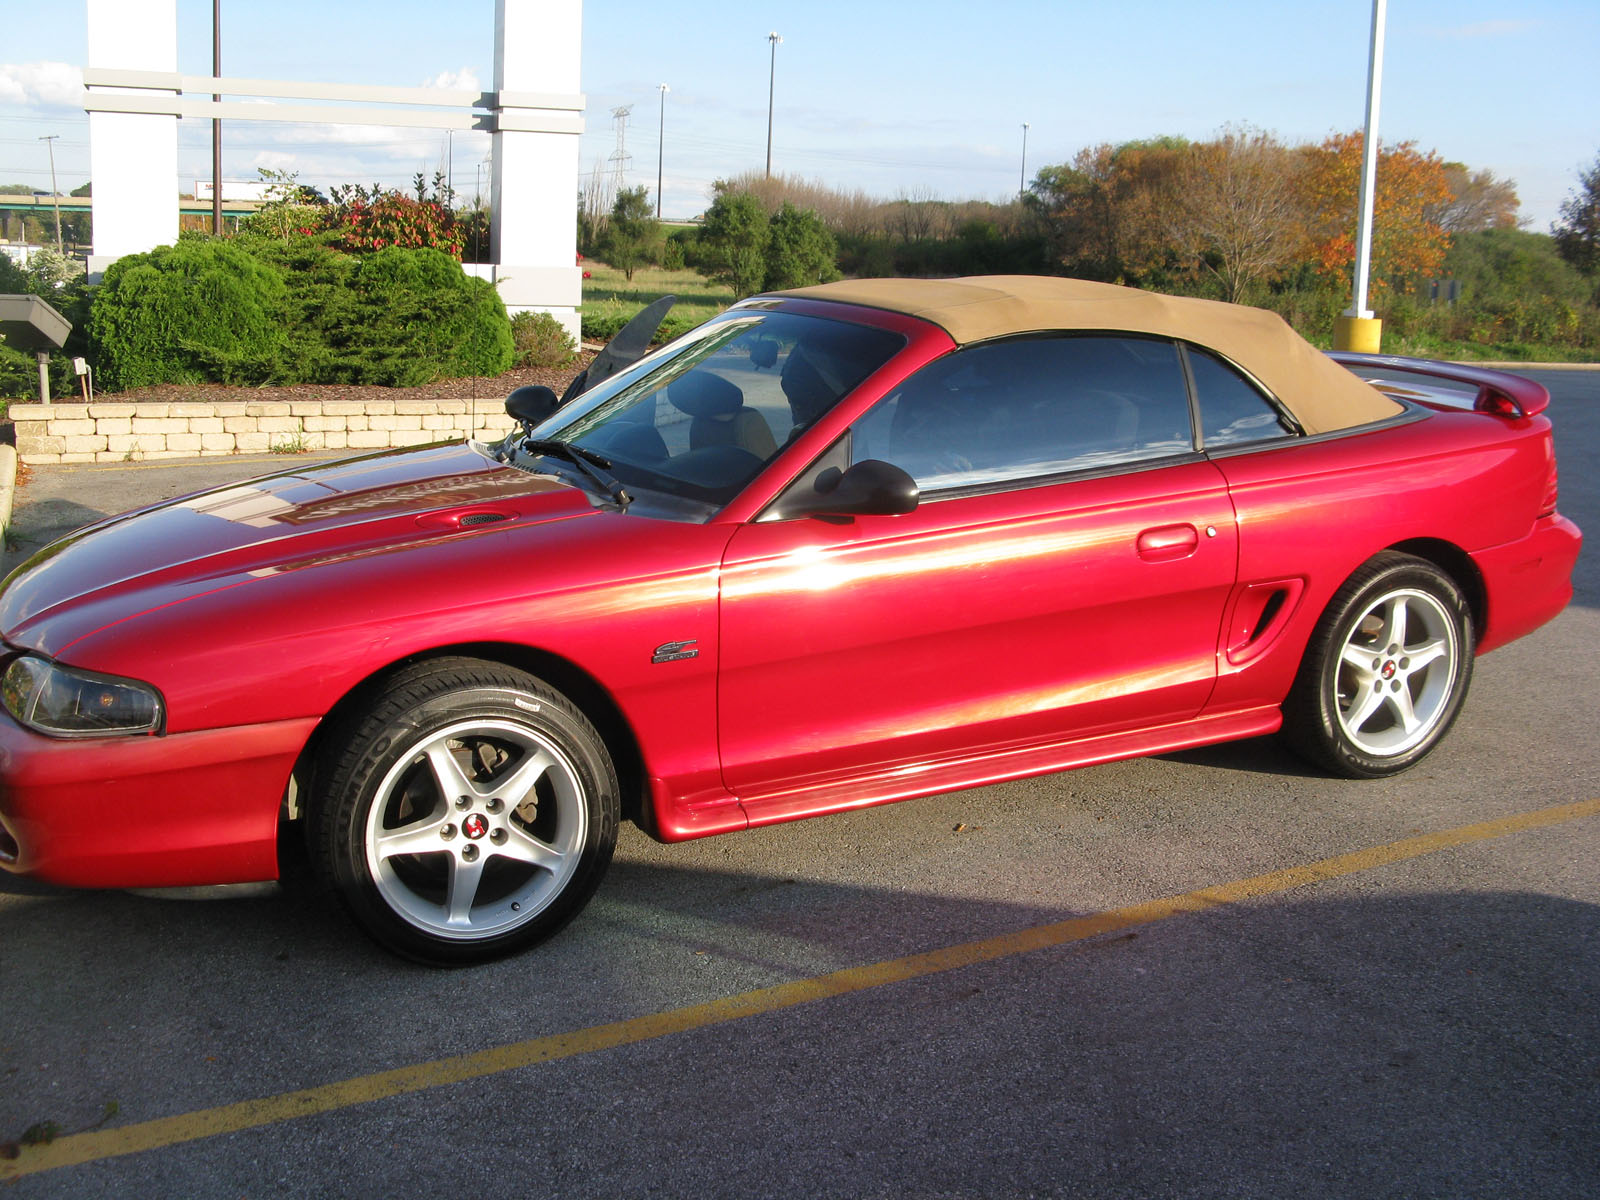 1995 ford mustang gt mustang gt for sale morris illinois. Black Bedroom Furniture Sets. Home Design Ideas